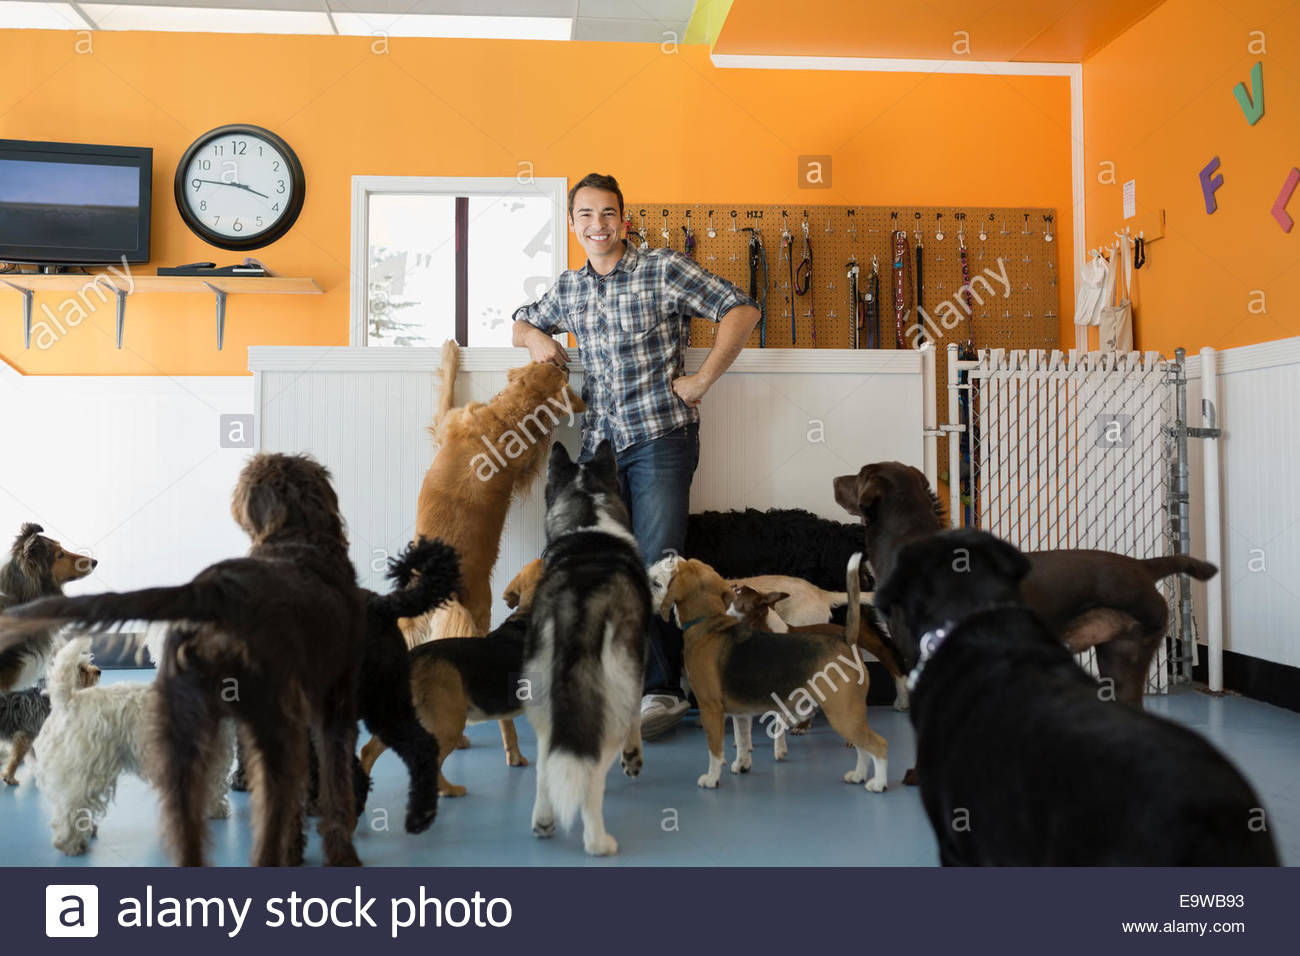 Dogs looking up at smiling dog daycare owner - Stock Image